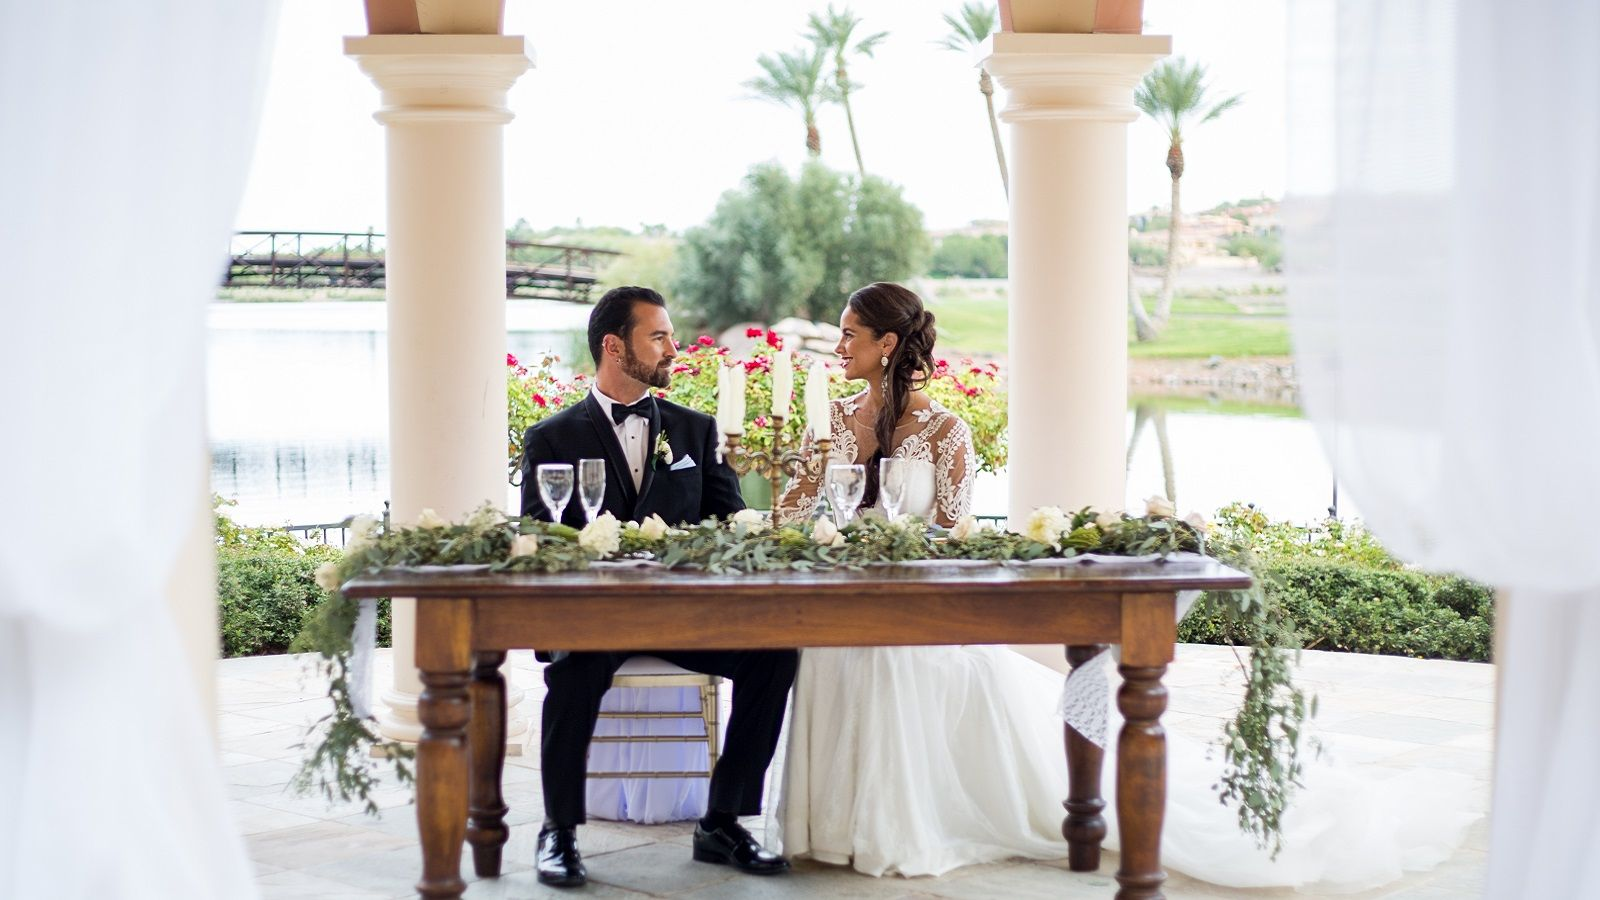 Wedding Venues Lake Las Vegas - Andalusian Gardens